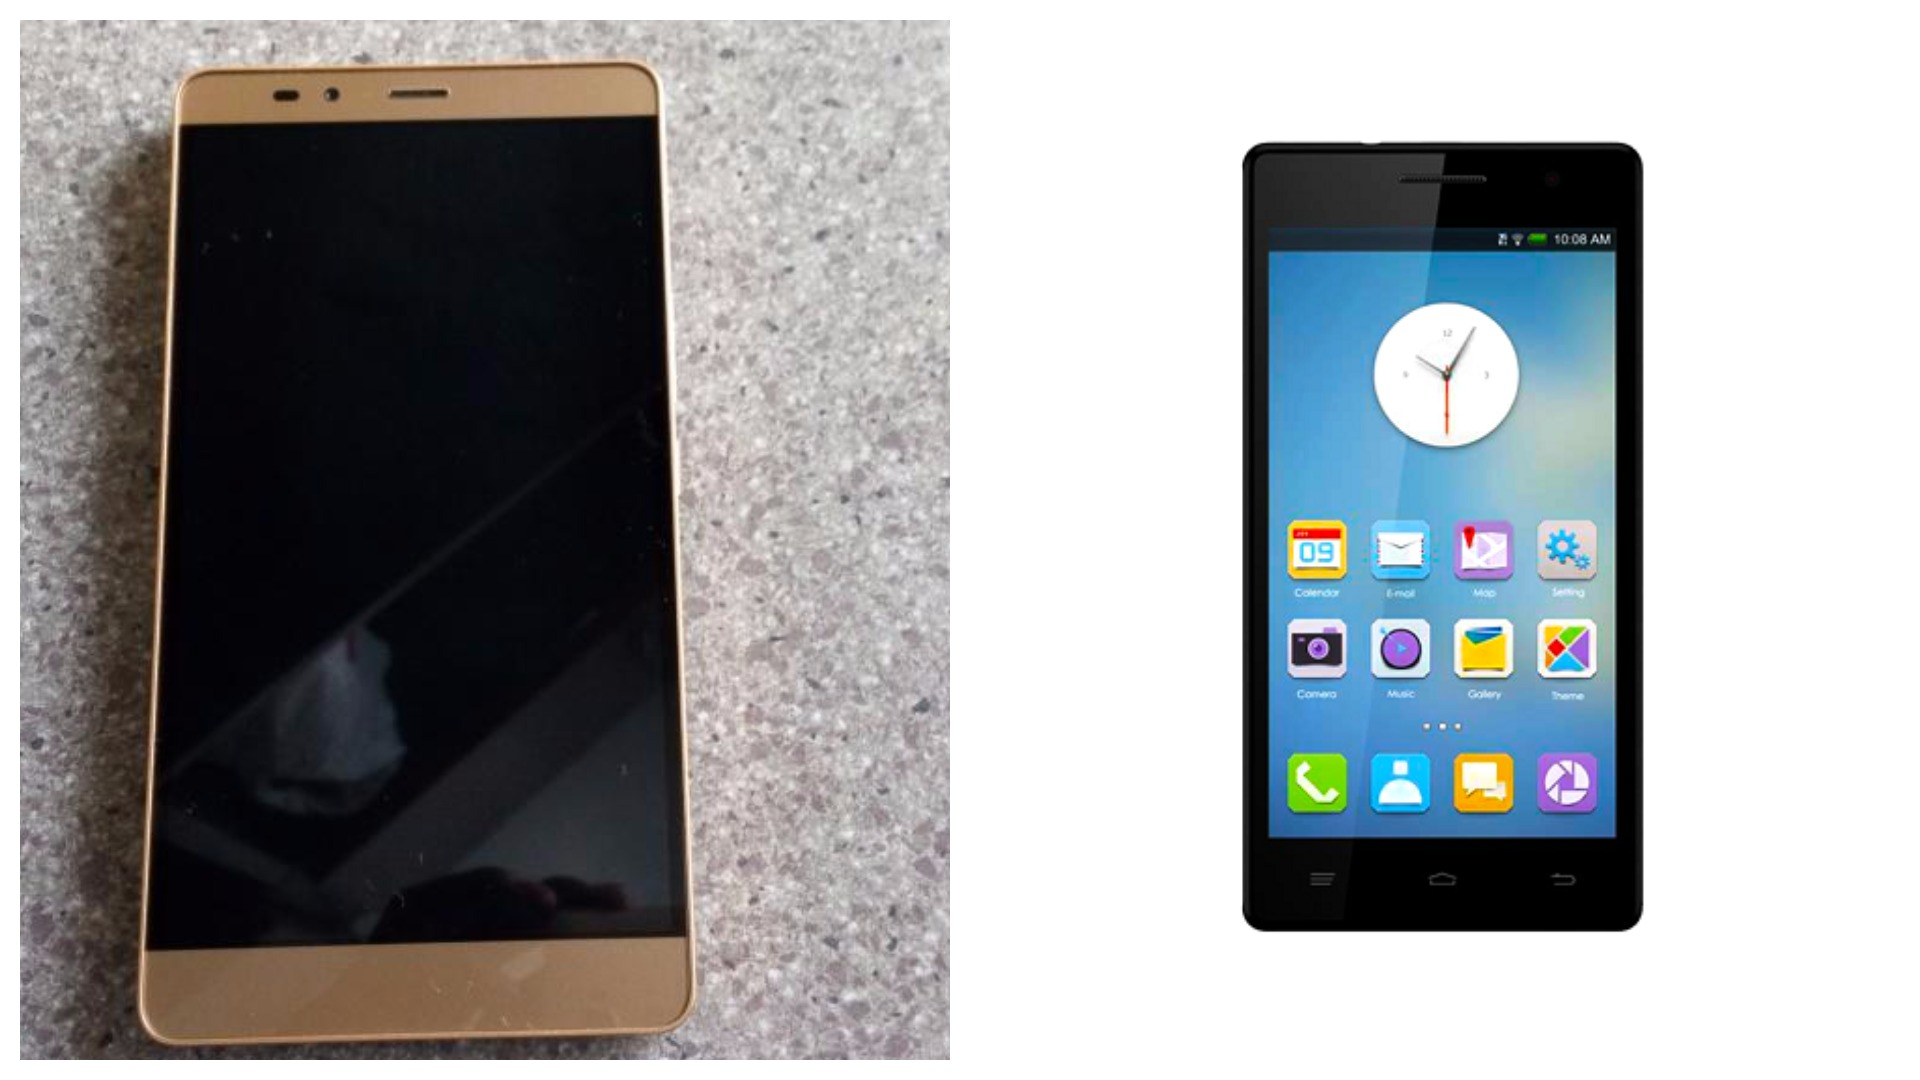 Infinix Note 2 vs XTigi X8